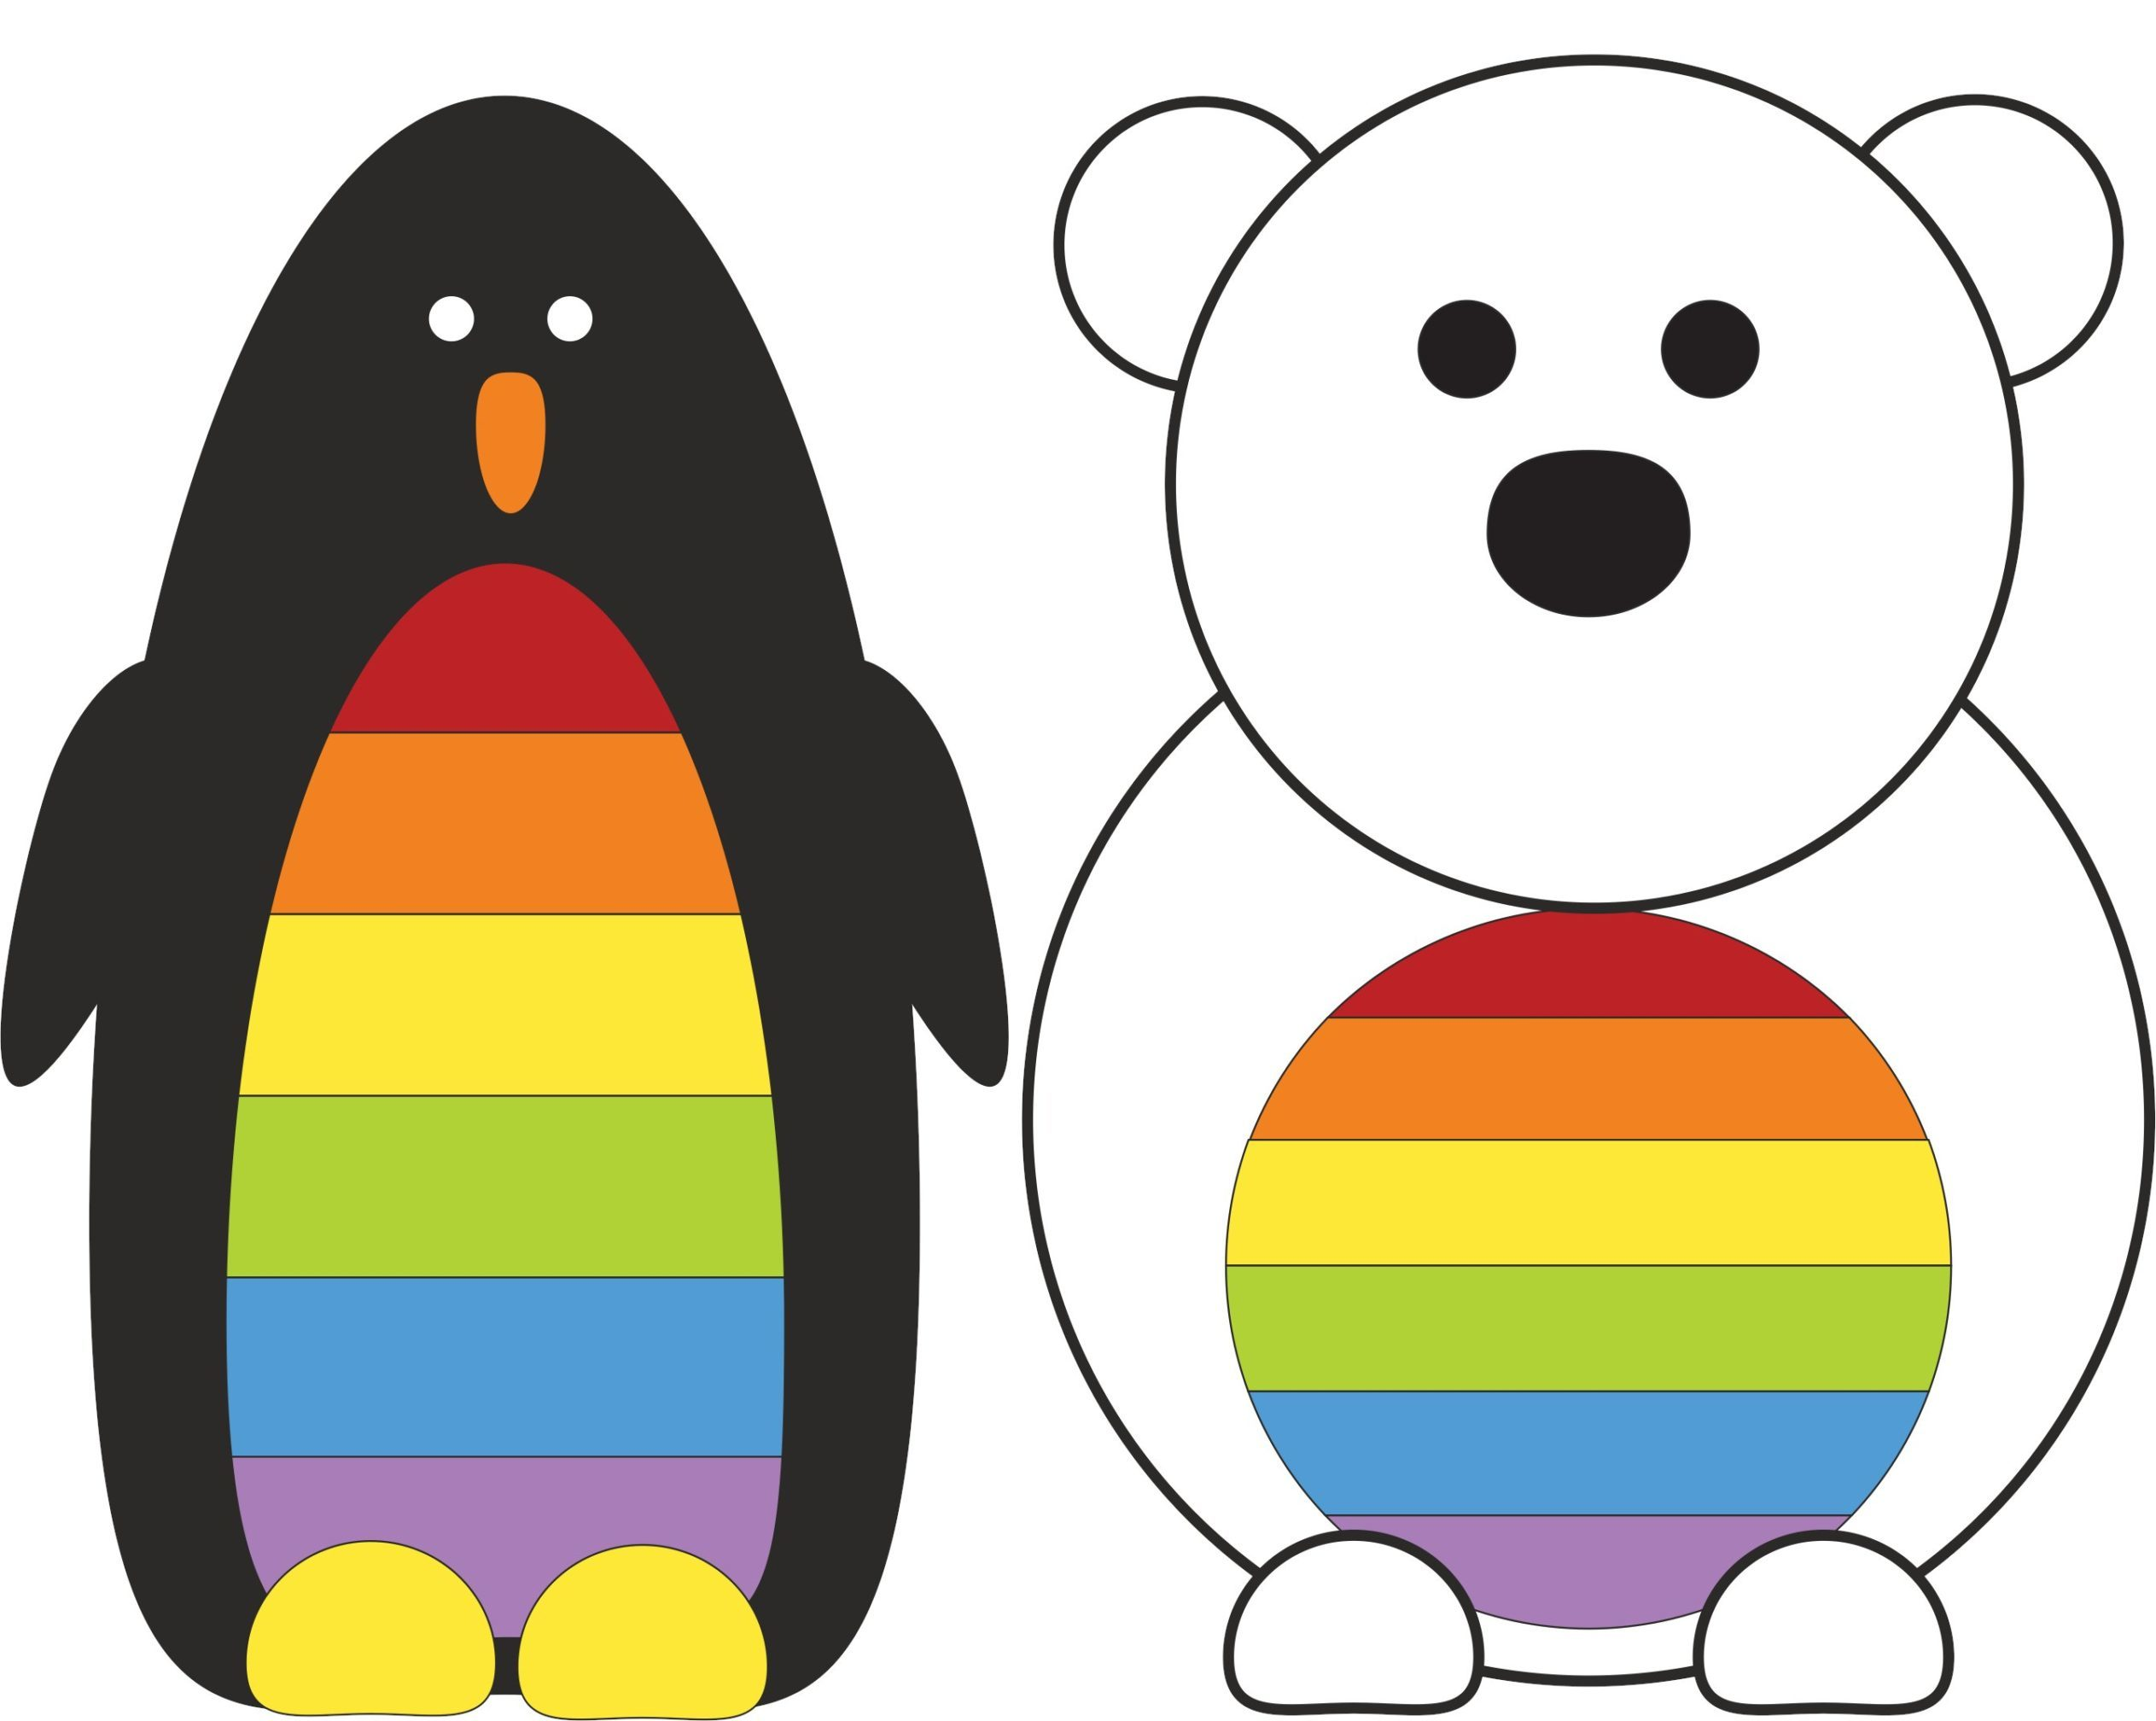 The Polar Pride-designed penguin and polar bear